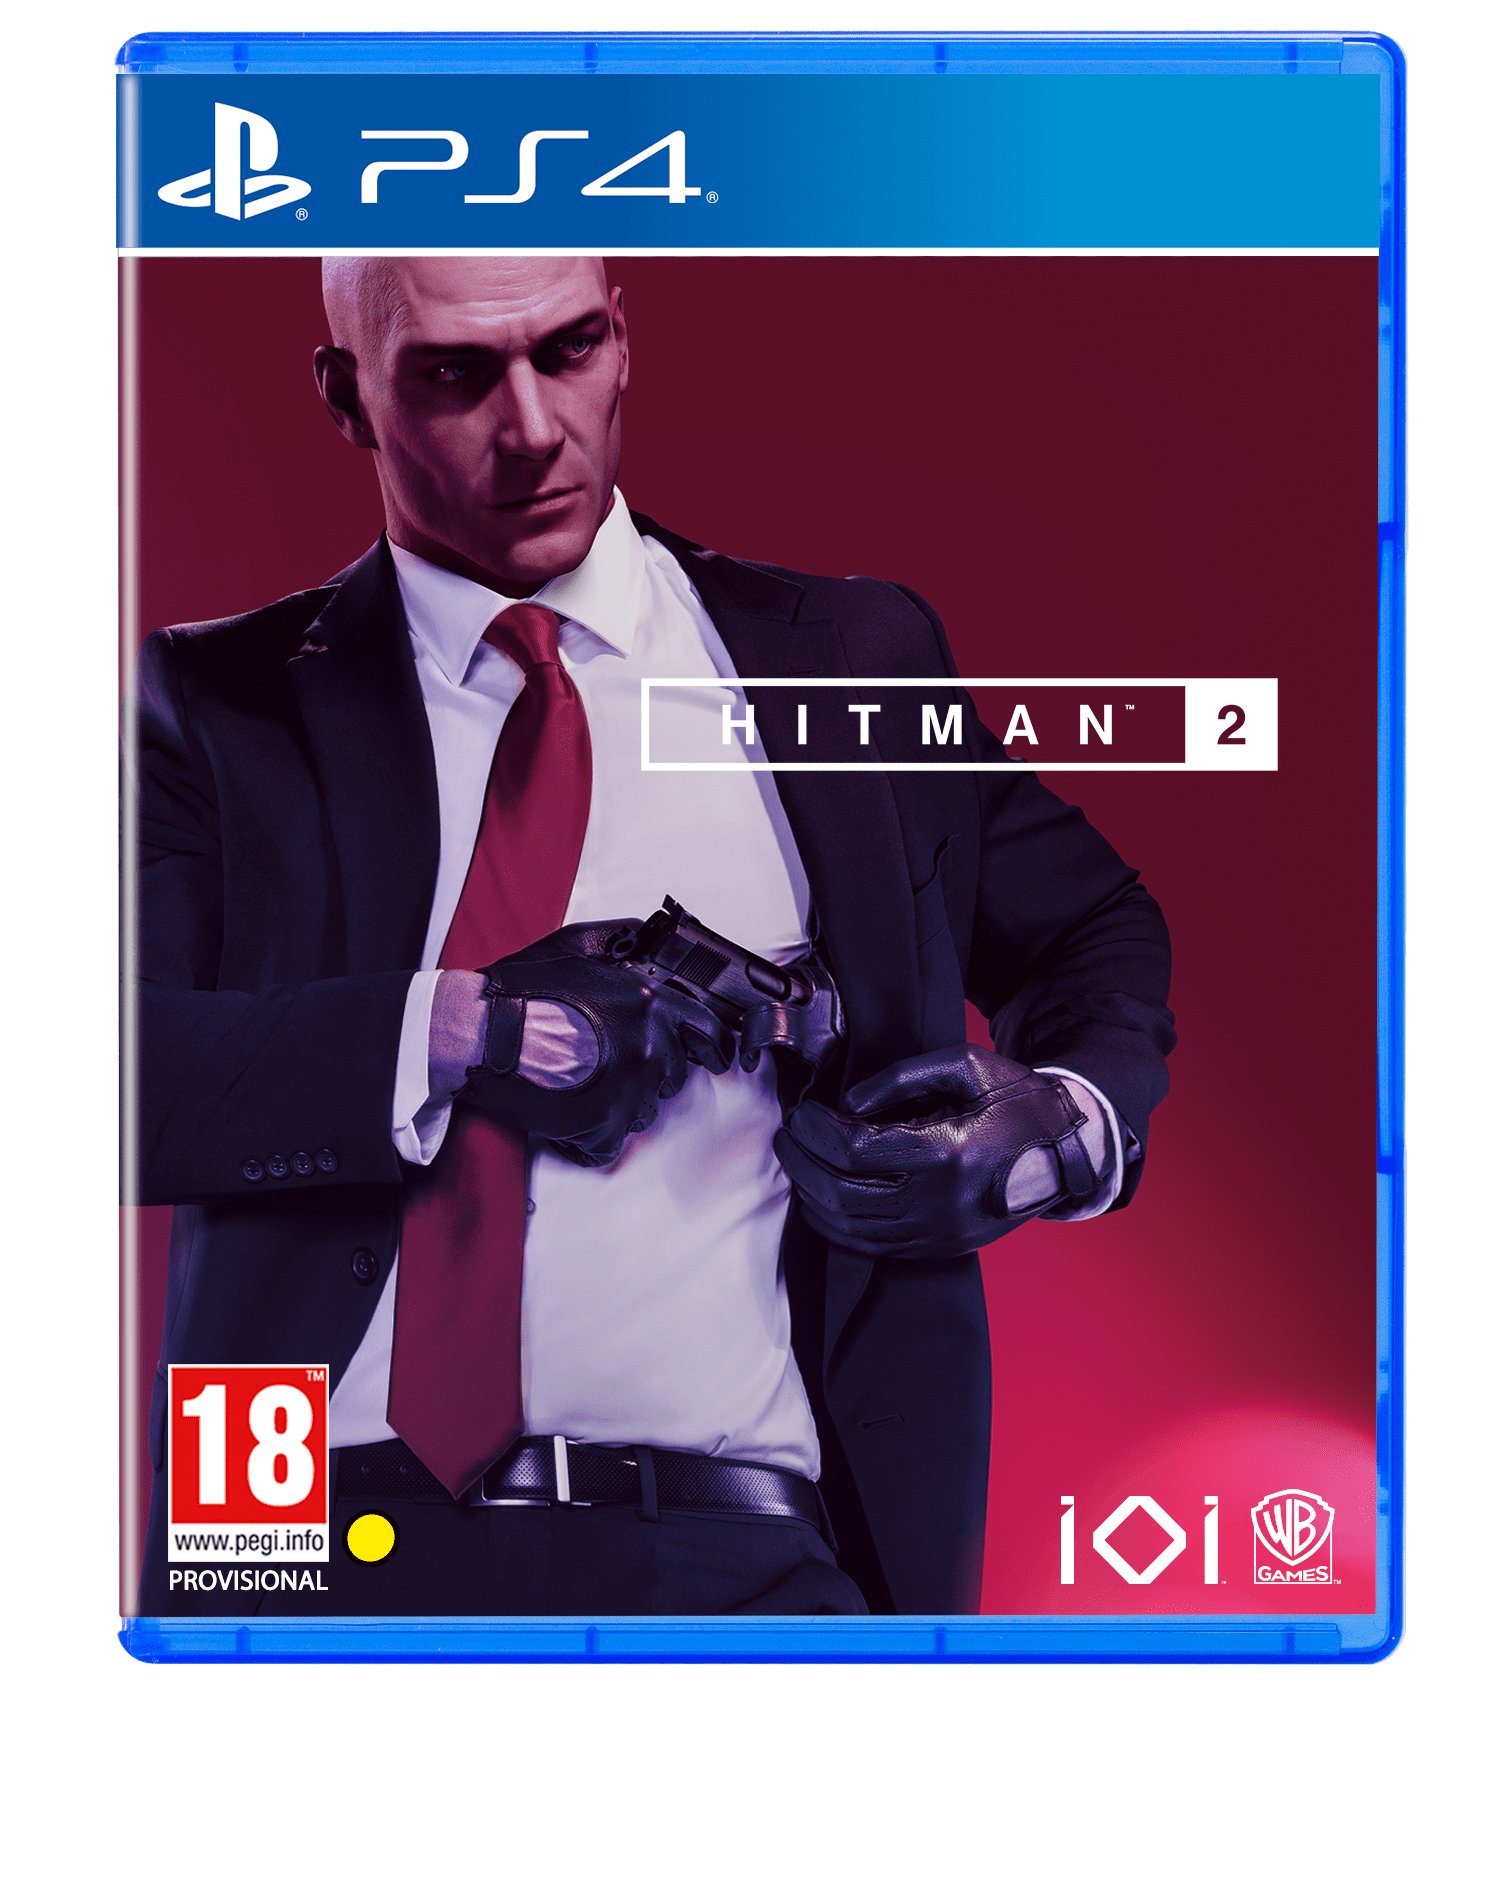 HITMAN 2 PS4 - Warner 1.12.74.05.007